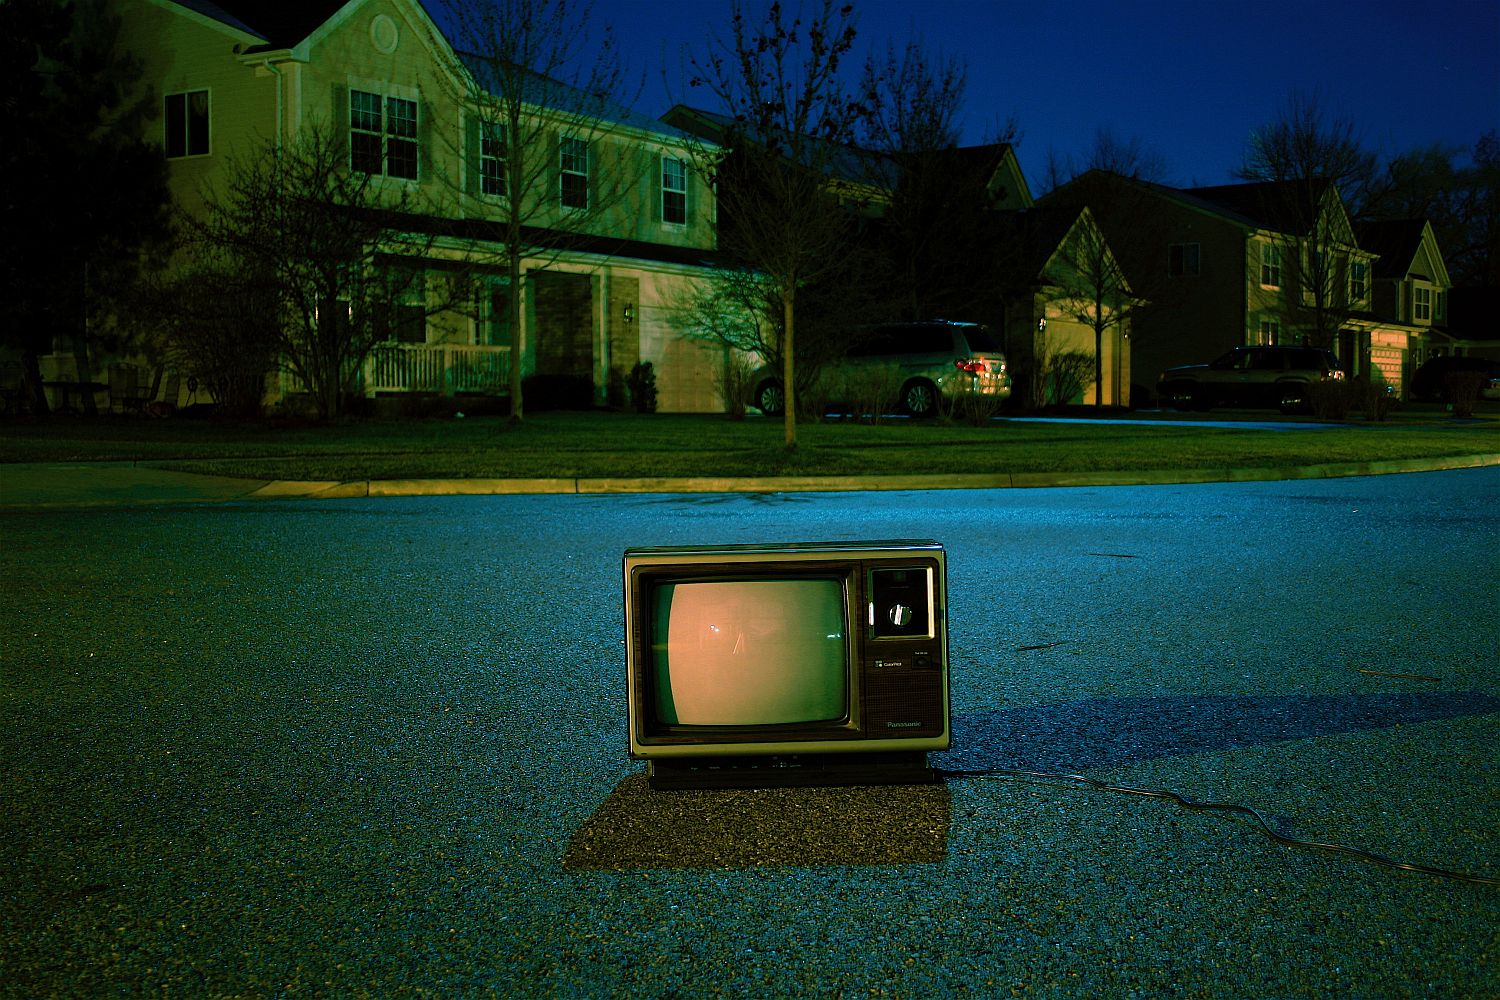 Television by Frank Okay via Unsplash